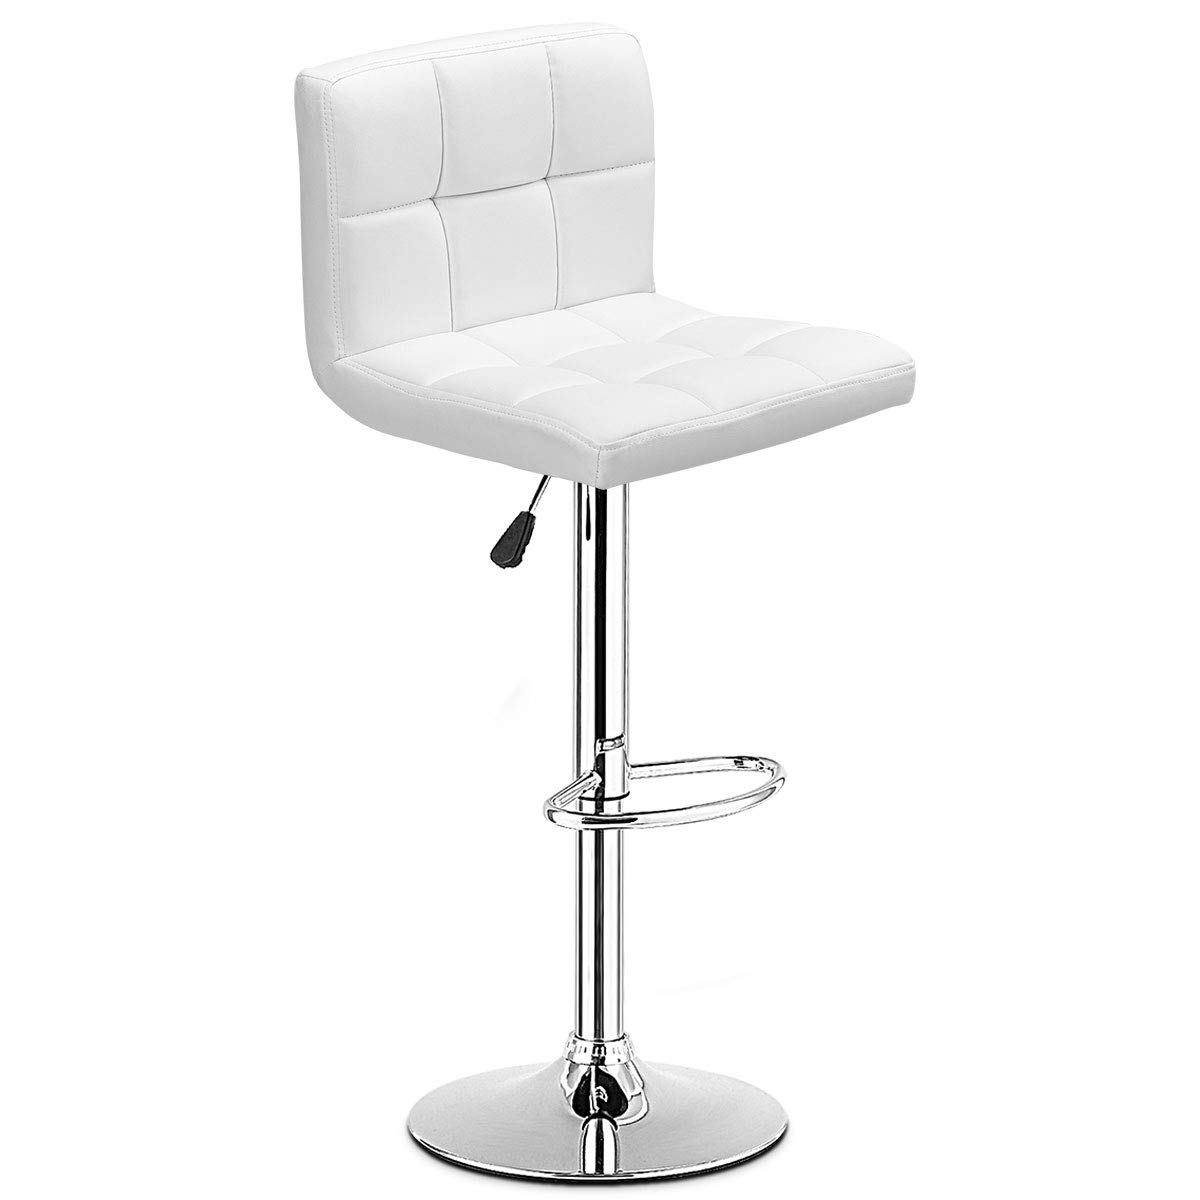 COSTWAY Bar Stool, Modern Swivel Adjustable Armless Barstools, Square Counter Height PU Leather Bar Stools for Kitchen Dining Living Bistro Pub Chair Counter Back Barstool(White, 1 Stool)